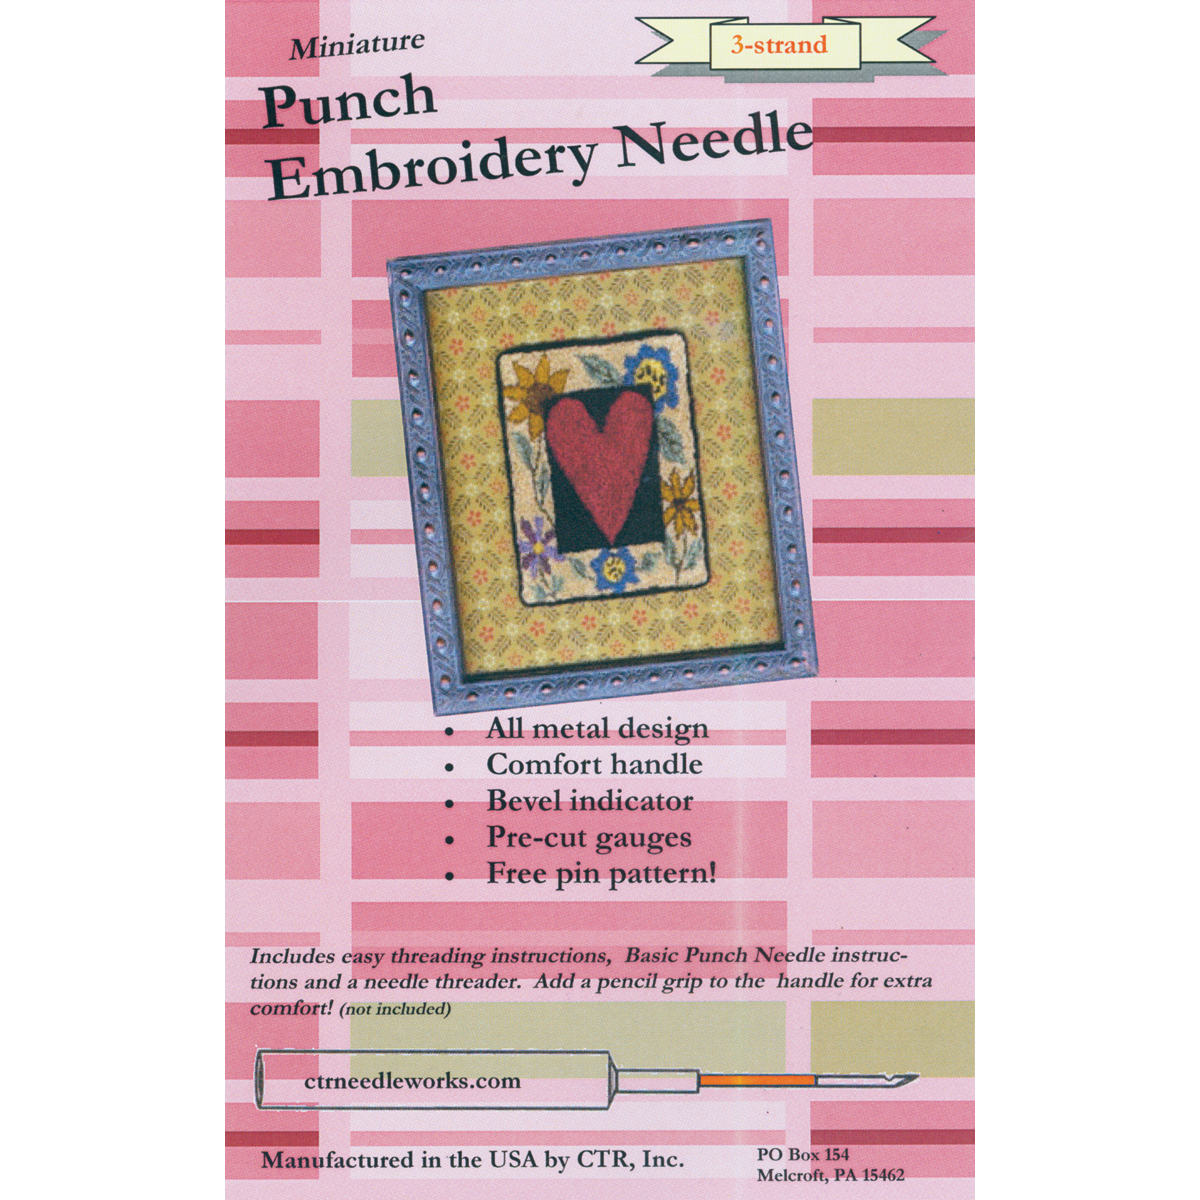 CTR Miniature Punch Embroidery Needle